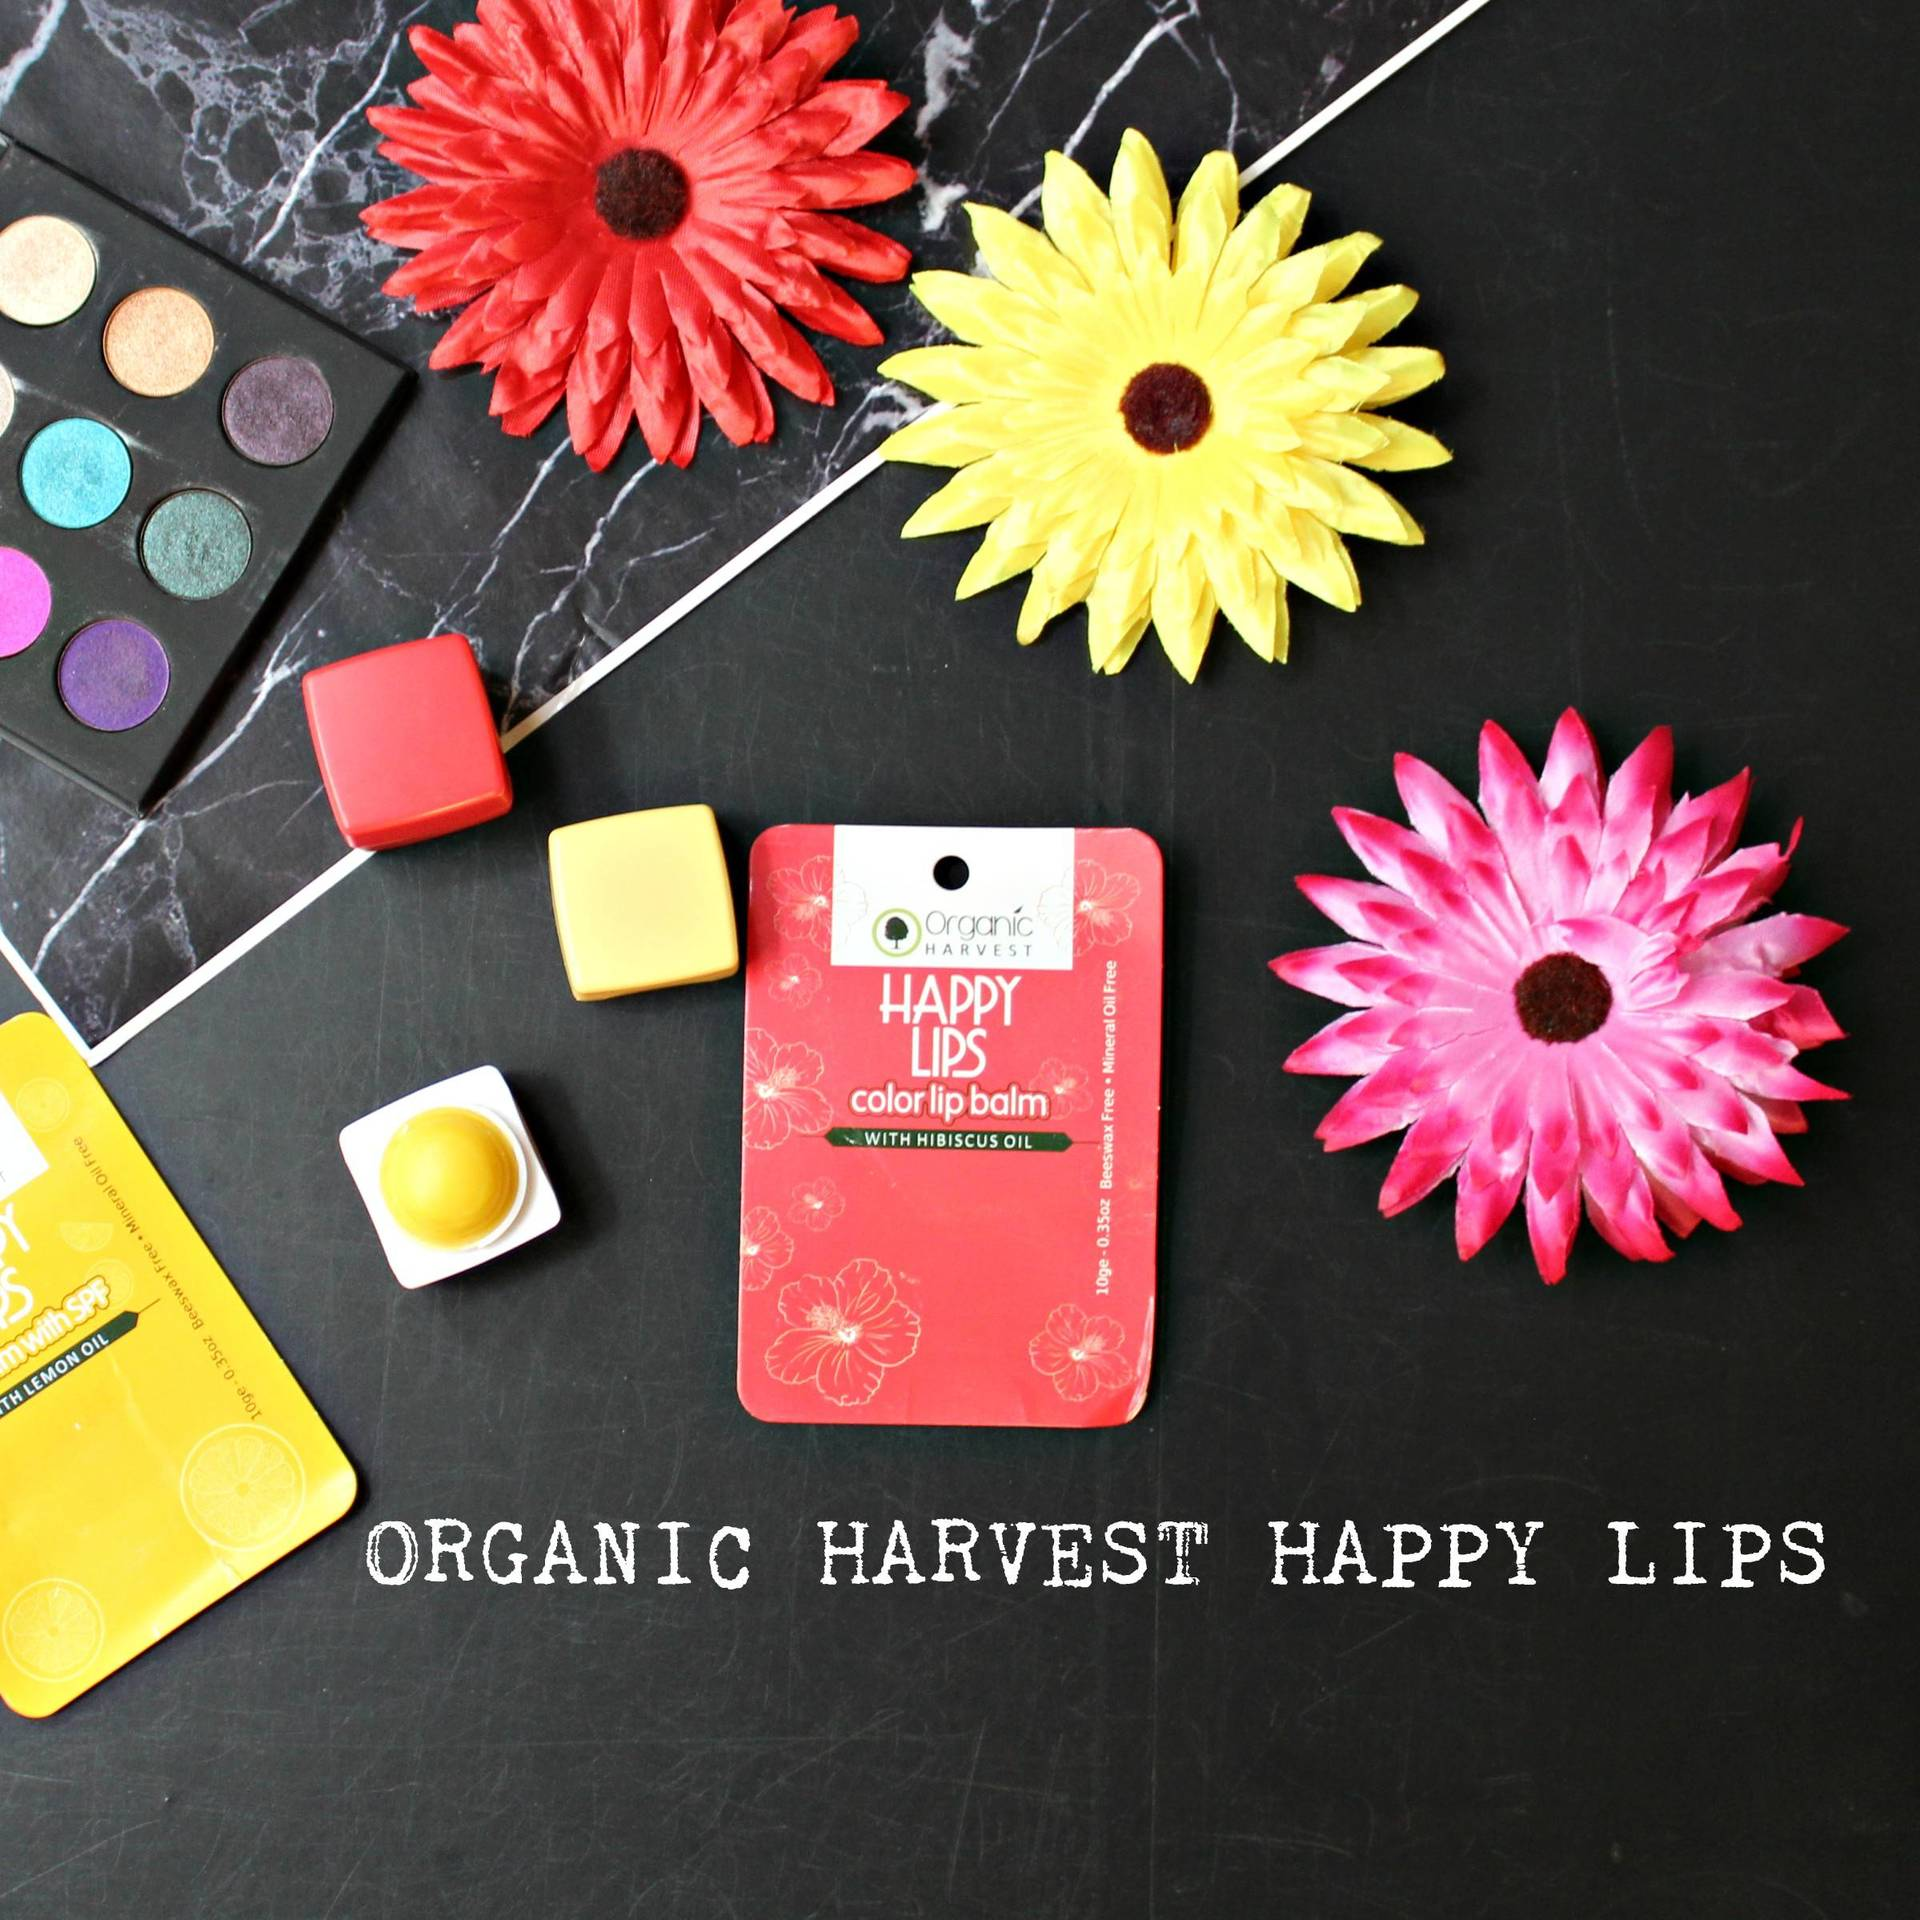 Organic Harvest Happy Lips Review image